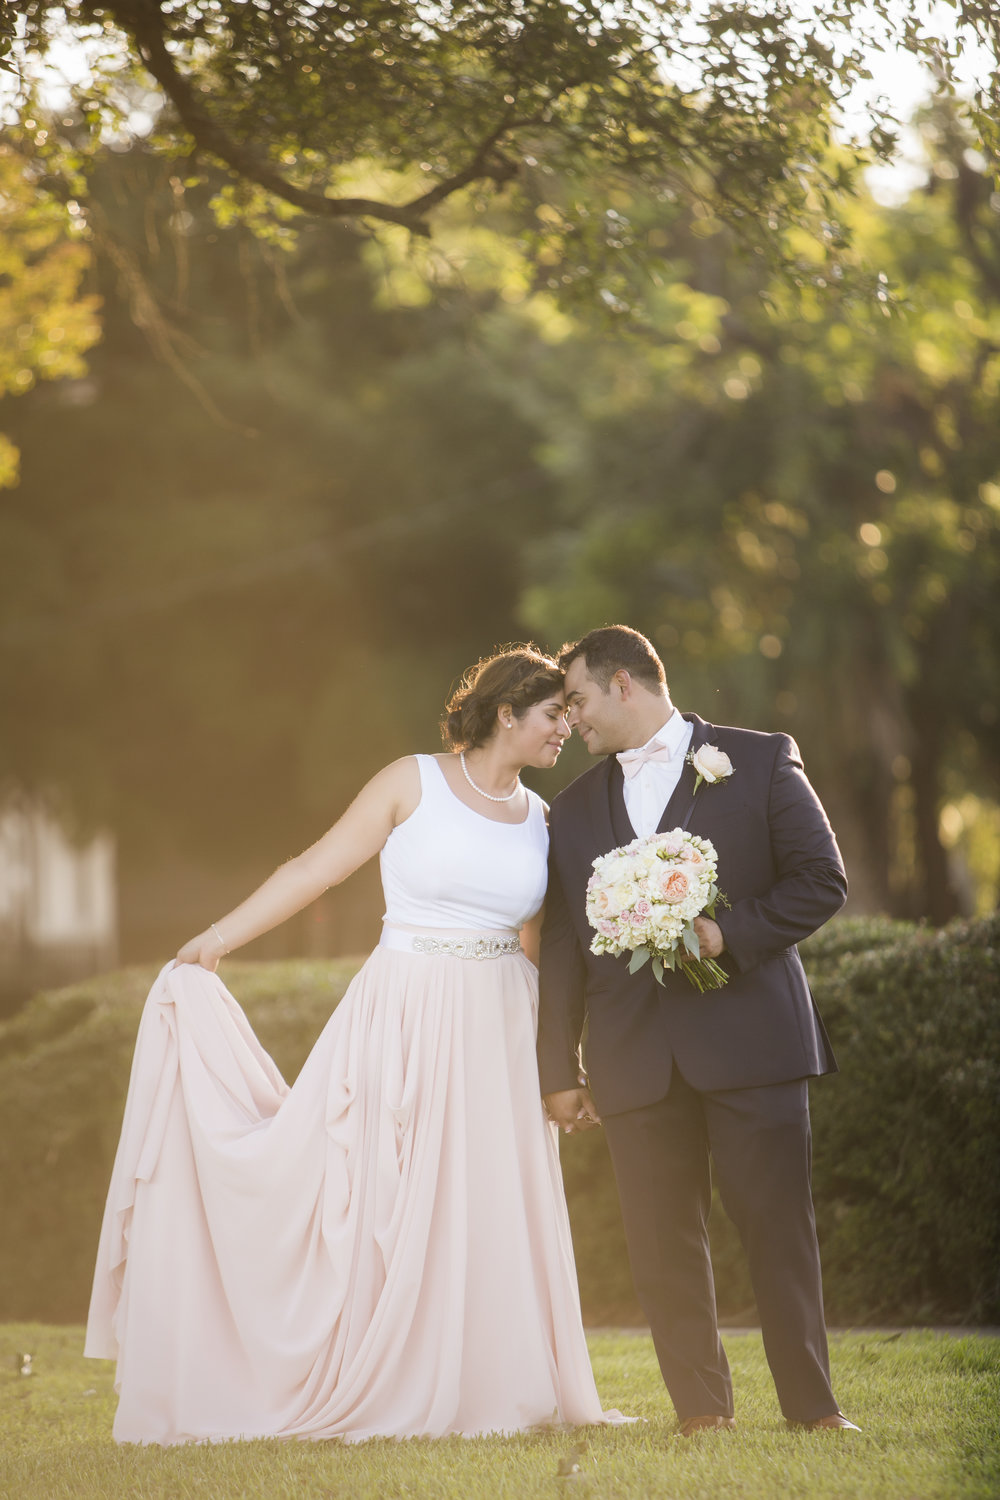 PREVIEWS-Jeniffer+Luis-065.jpg